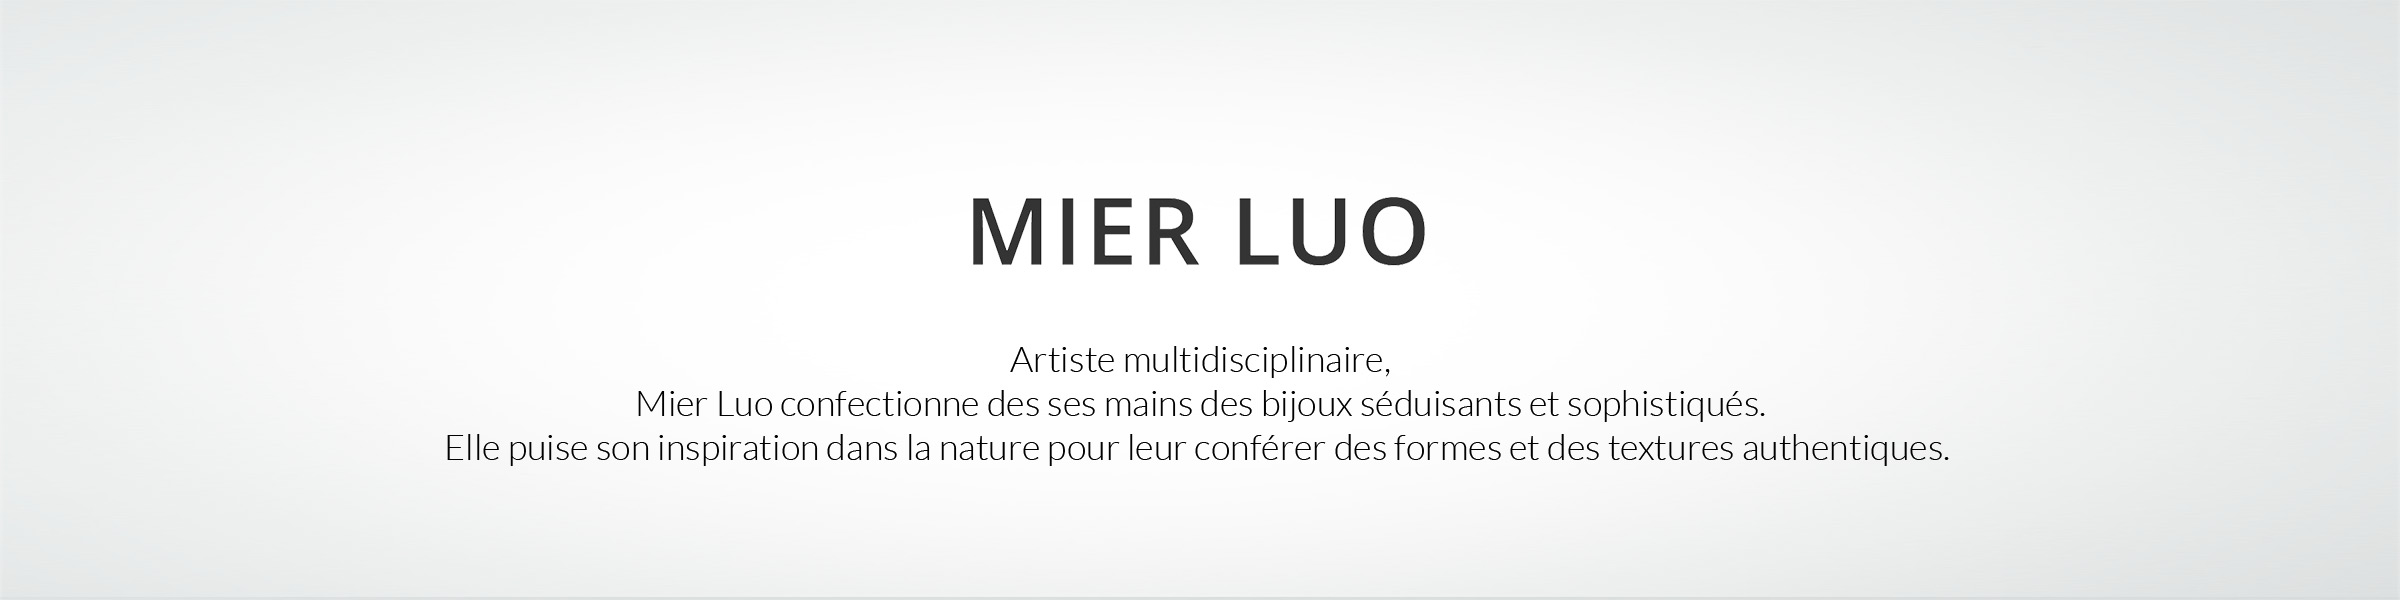 032324 Mier Luo